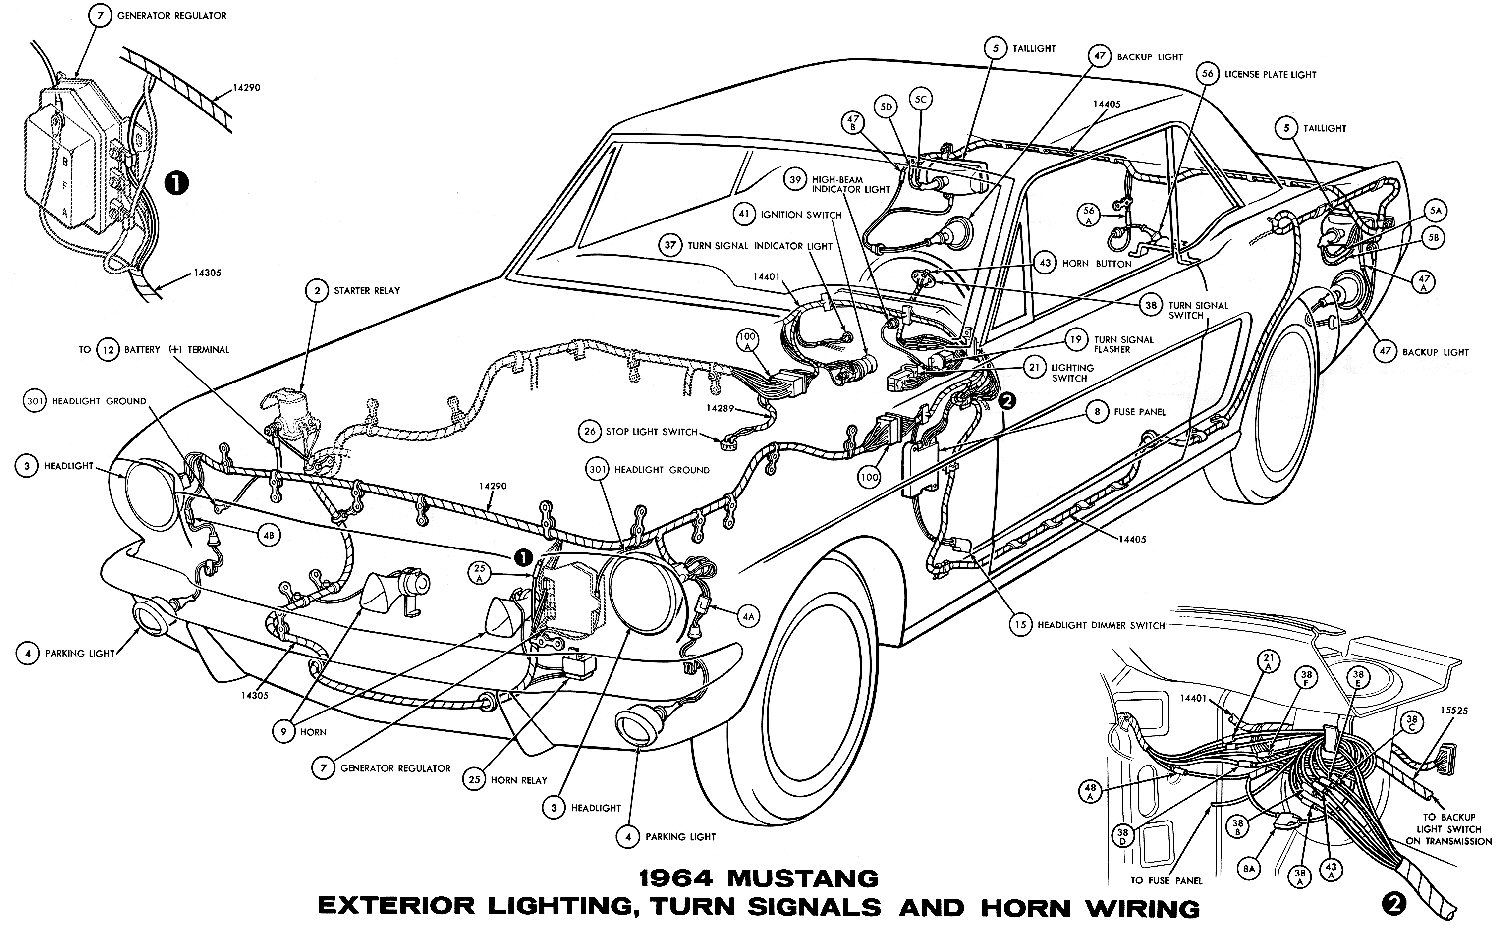 hight resolution of 67 ford mustang wiring diagram 1964 mustang exterior lightning turn signals and